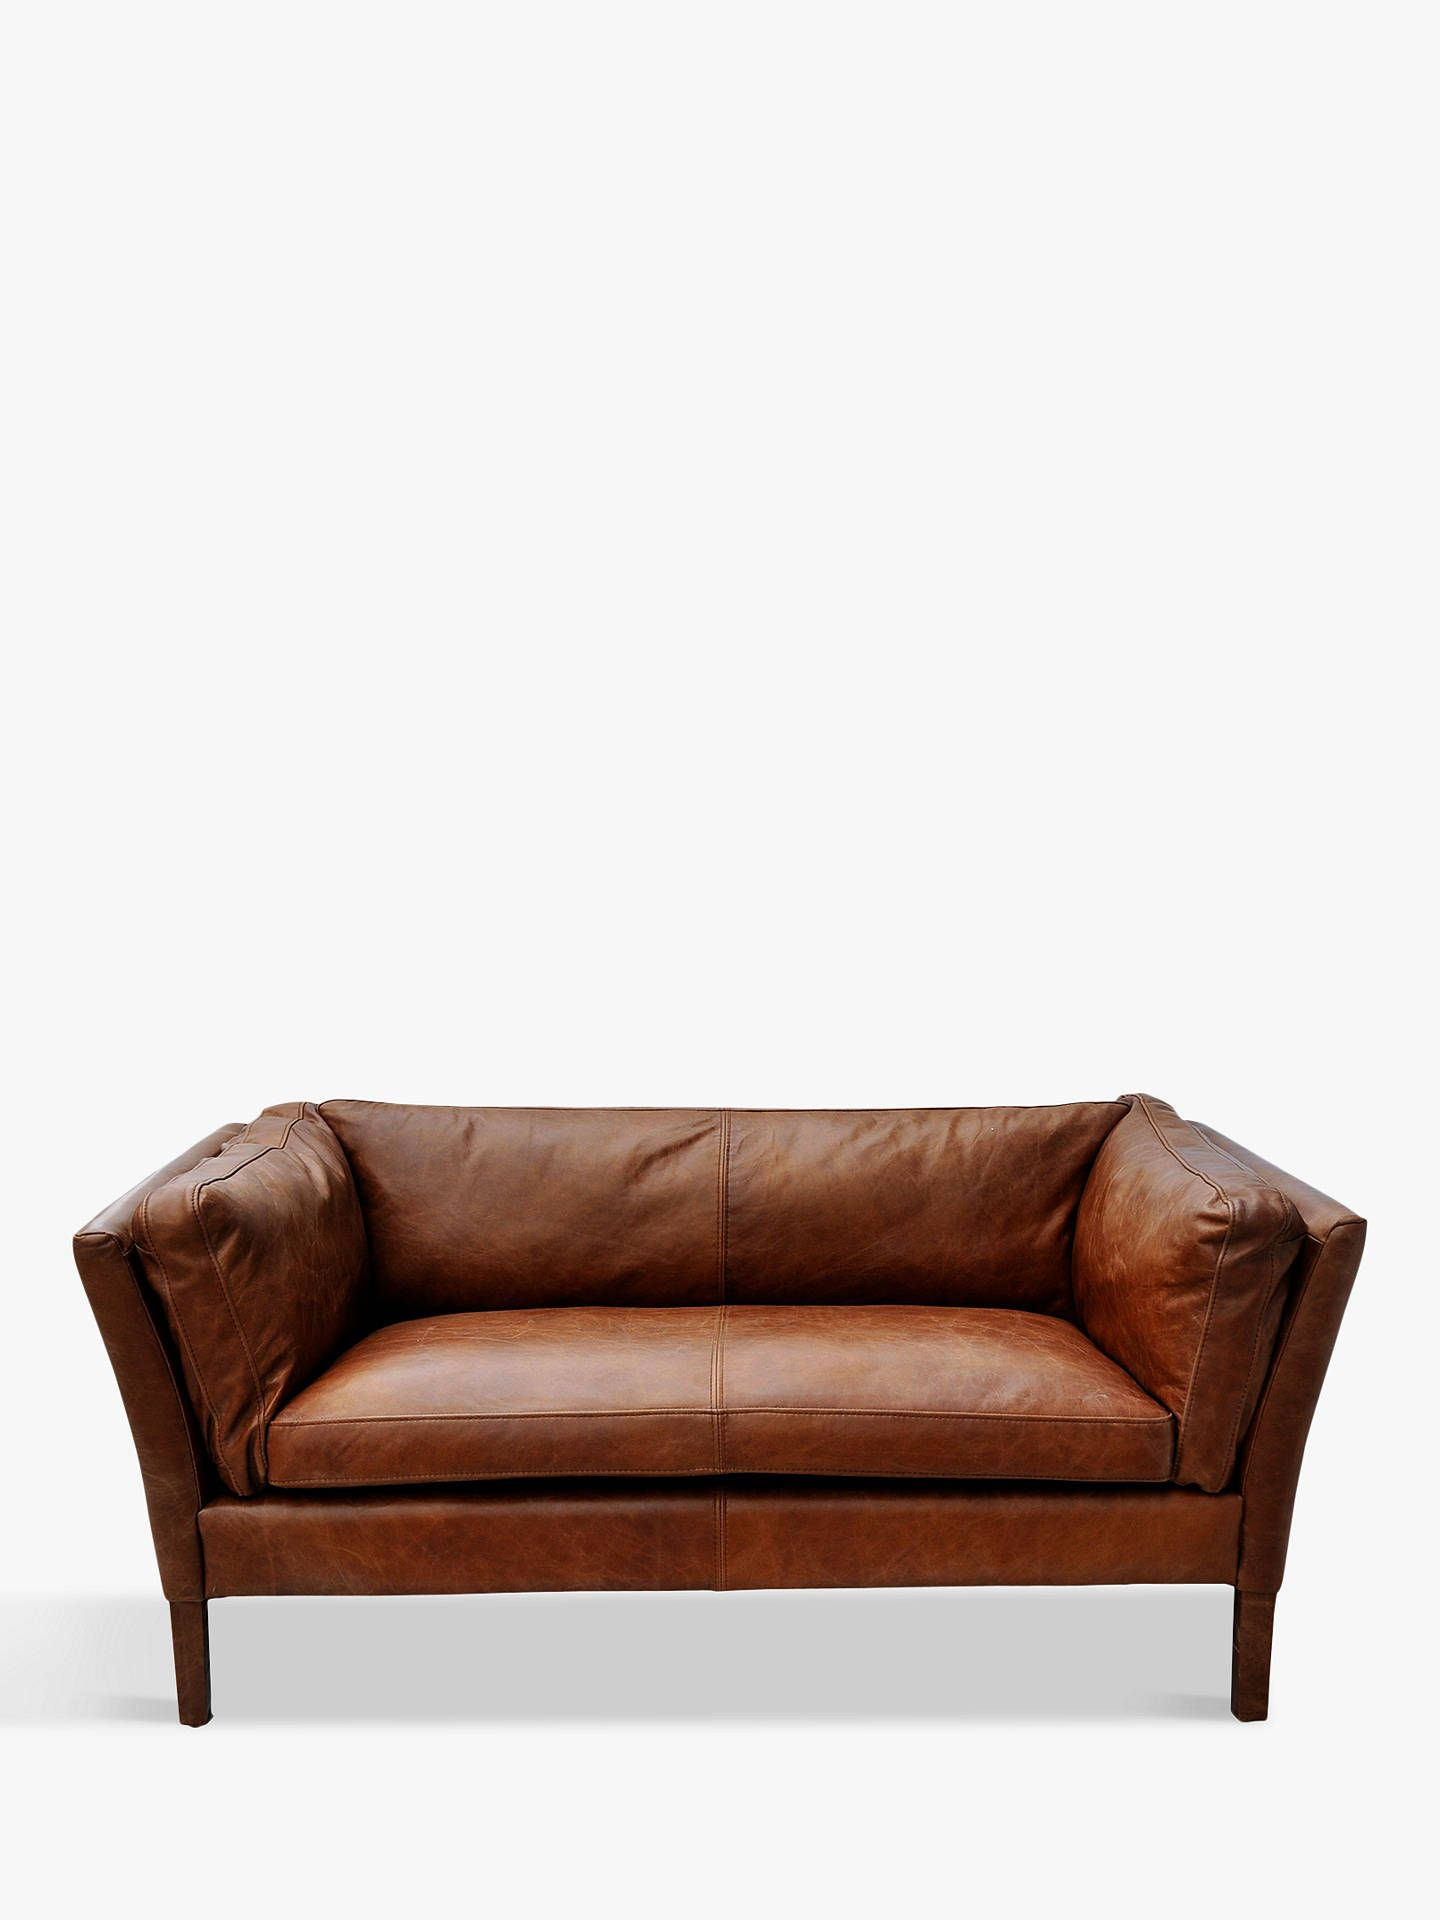 Halo Groucho Small 2 Seater Leather Sofa Antique Whisky In 2020 Brown Leather Sofa Leather Sofa Leather Armchair